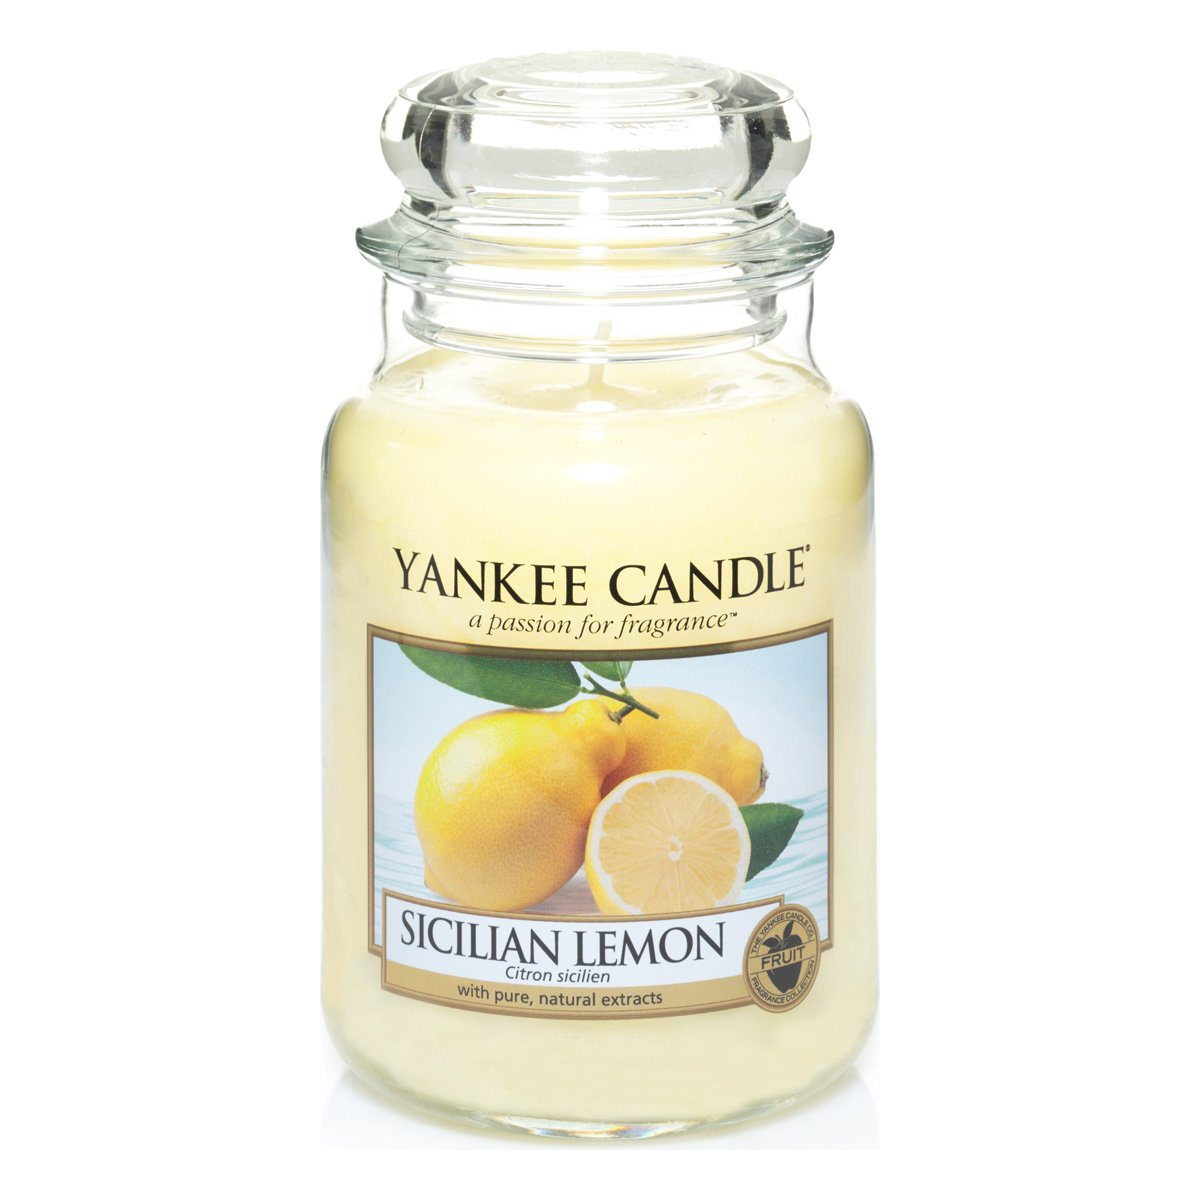 Yankee Candle Large Jar Candle, Sicilian Lemon 1230635E